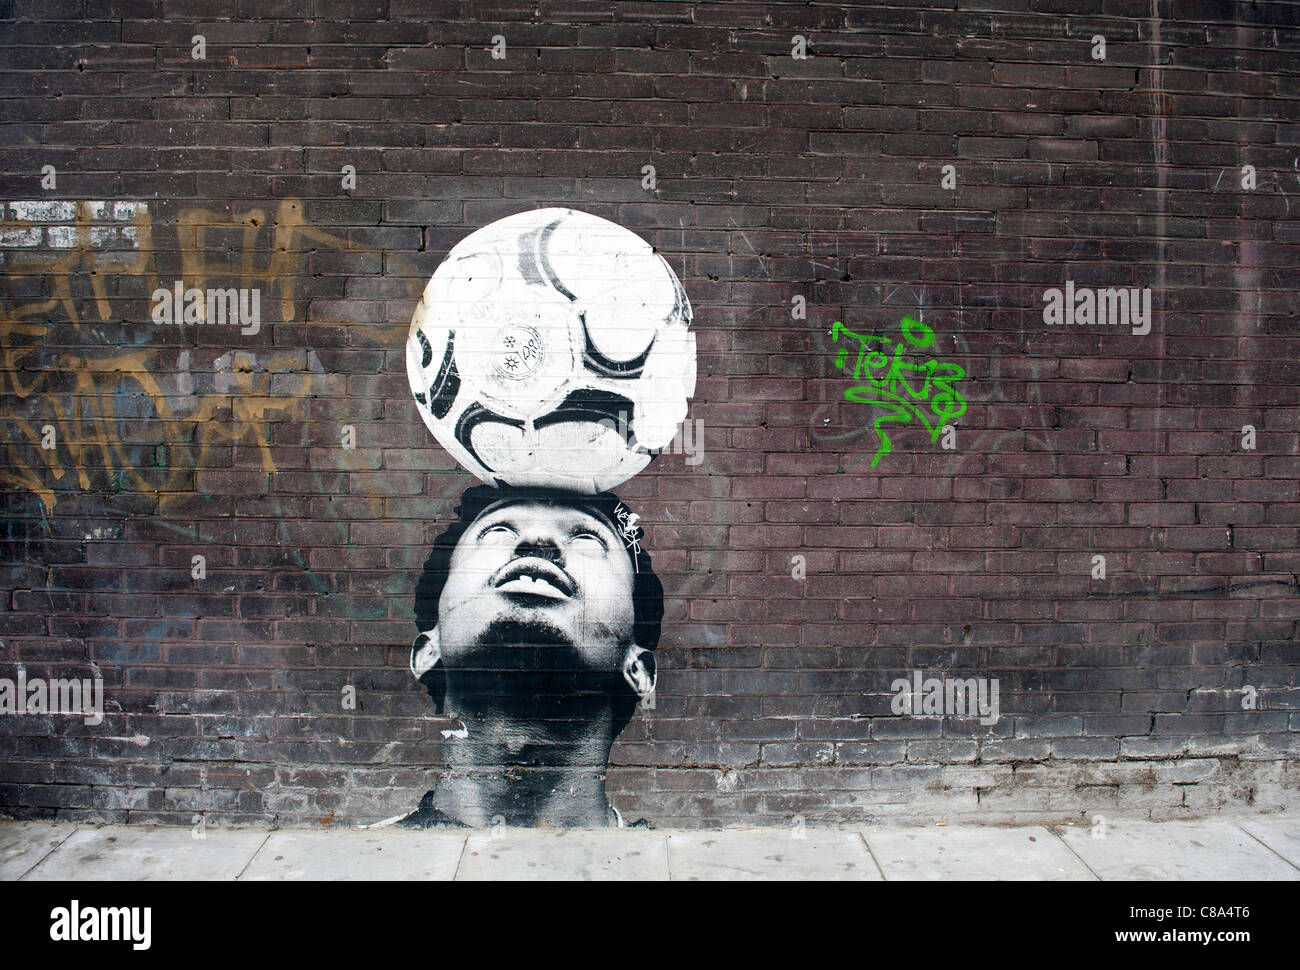 Street art/graffiti on the streets of the east end of London, UK - Stock Image